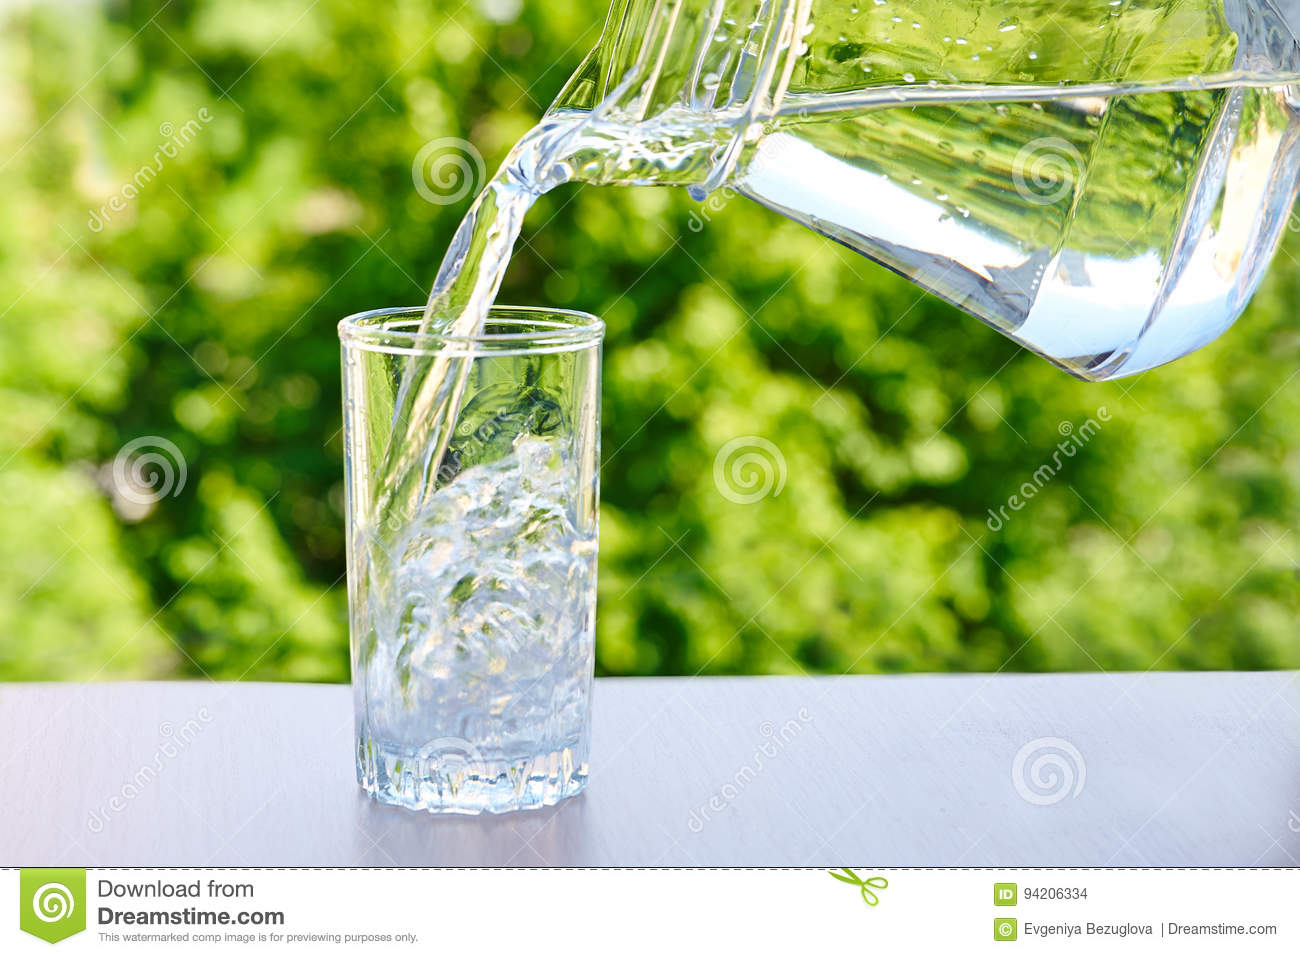 Clean drinking water is poured from a jug into a glass